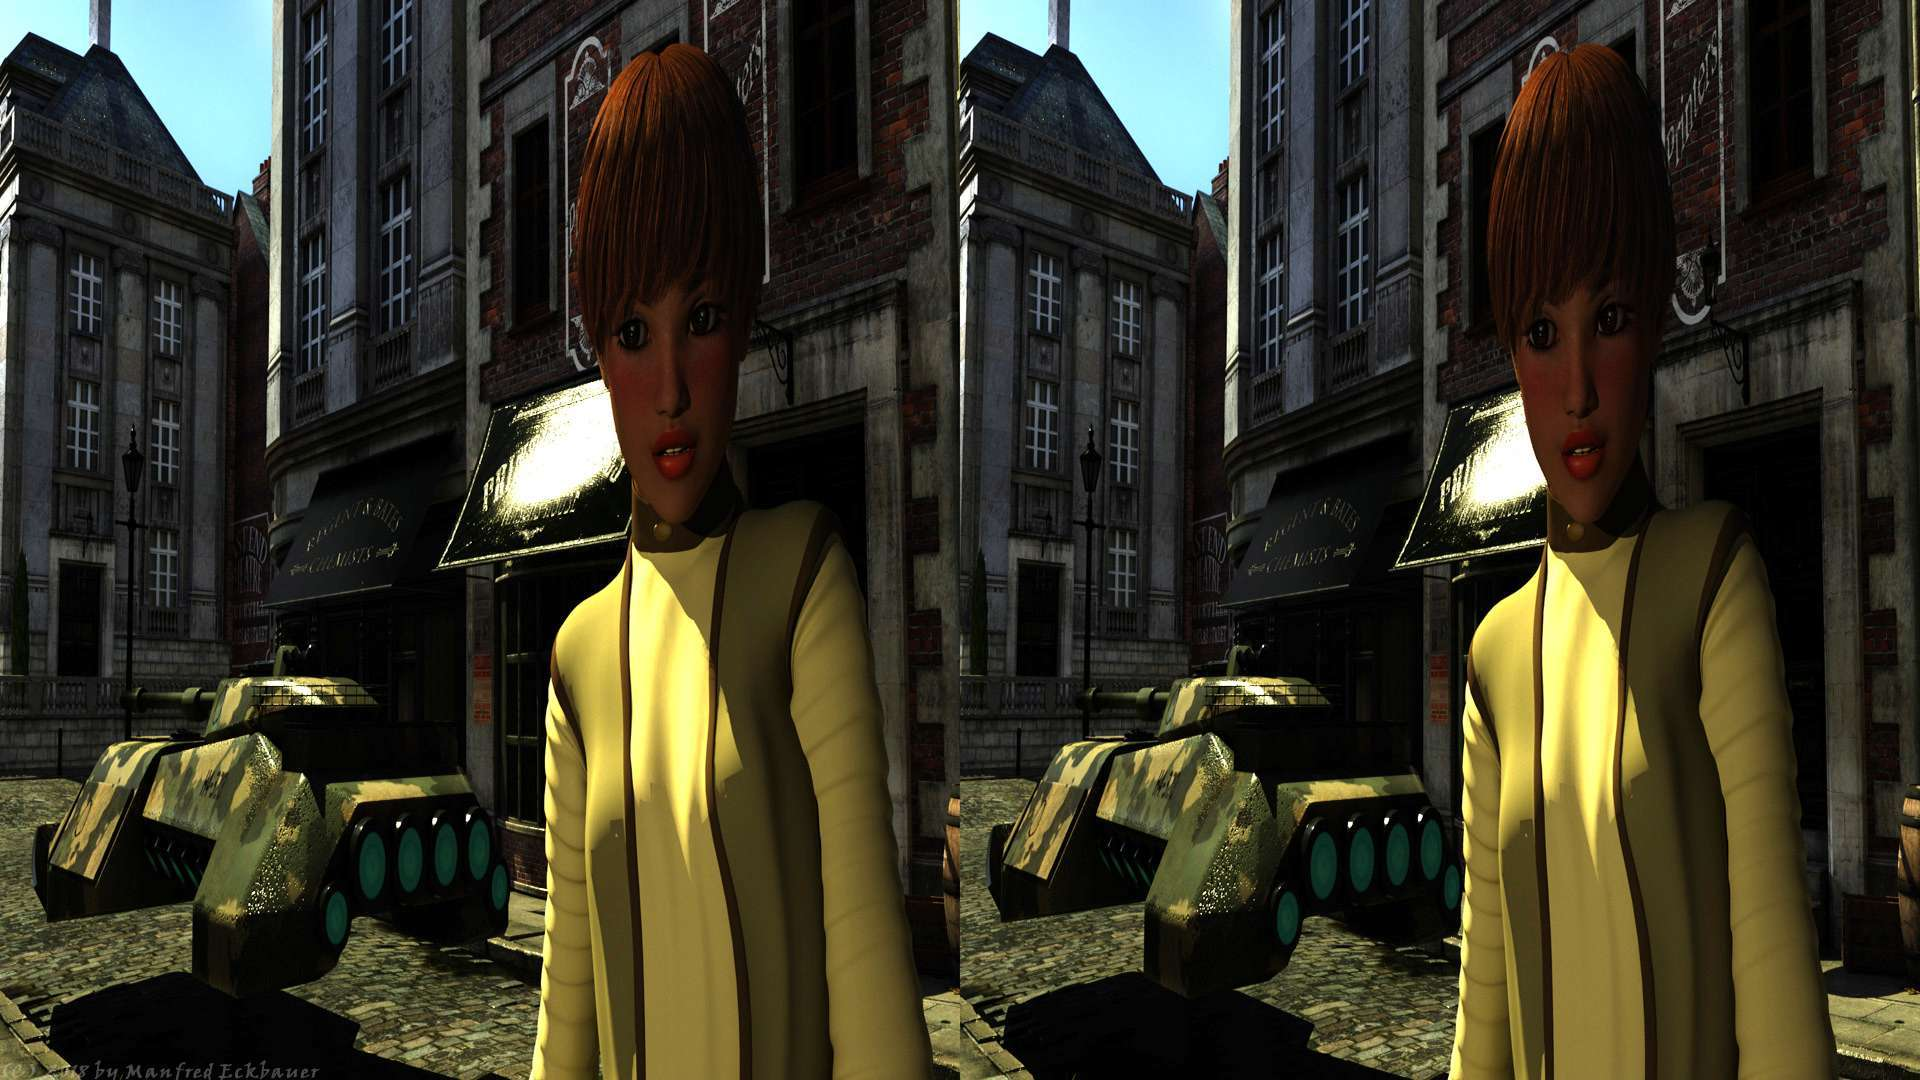 London Girl for your 3D-TV (side by side)